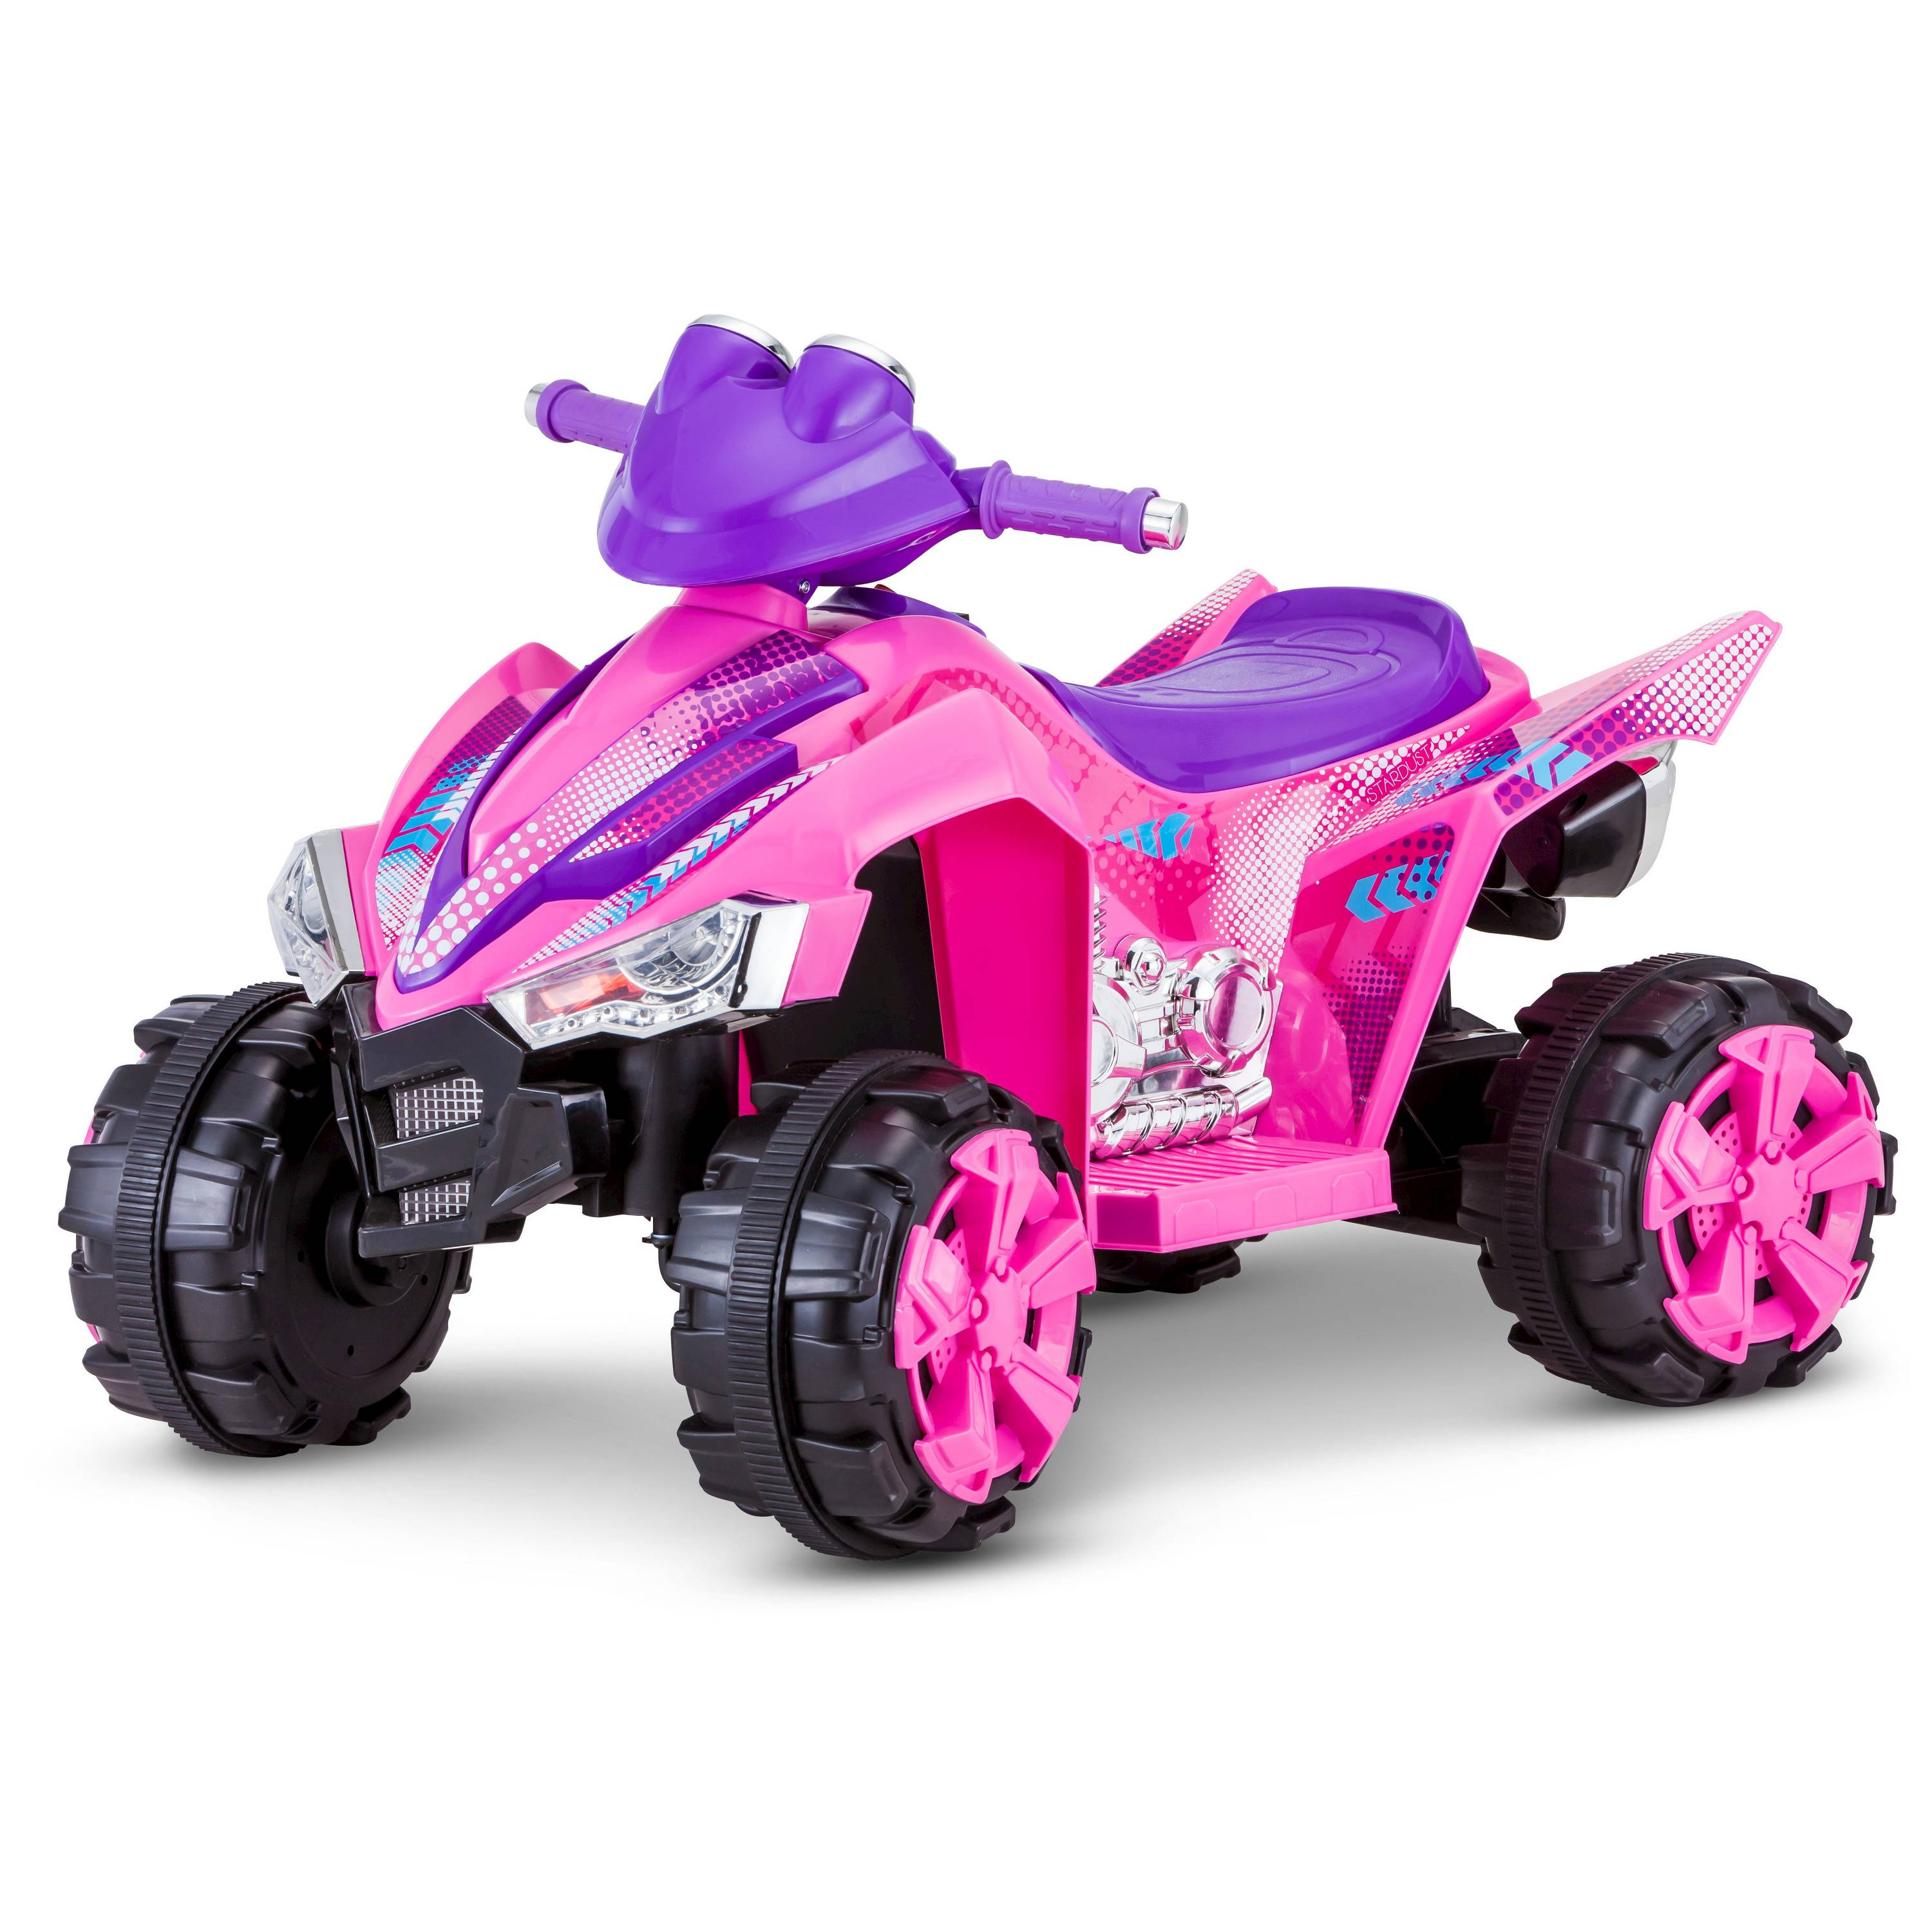 Kid trax stardust 6v electric ride on atv pink for Motorized atv for toddlers